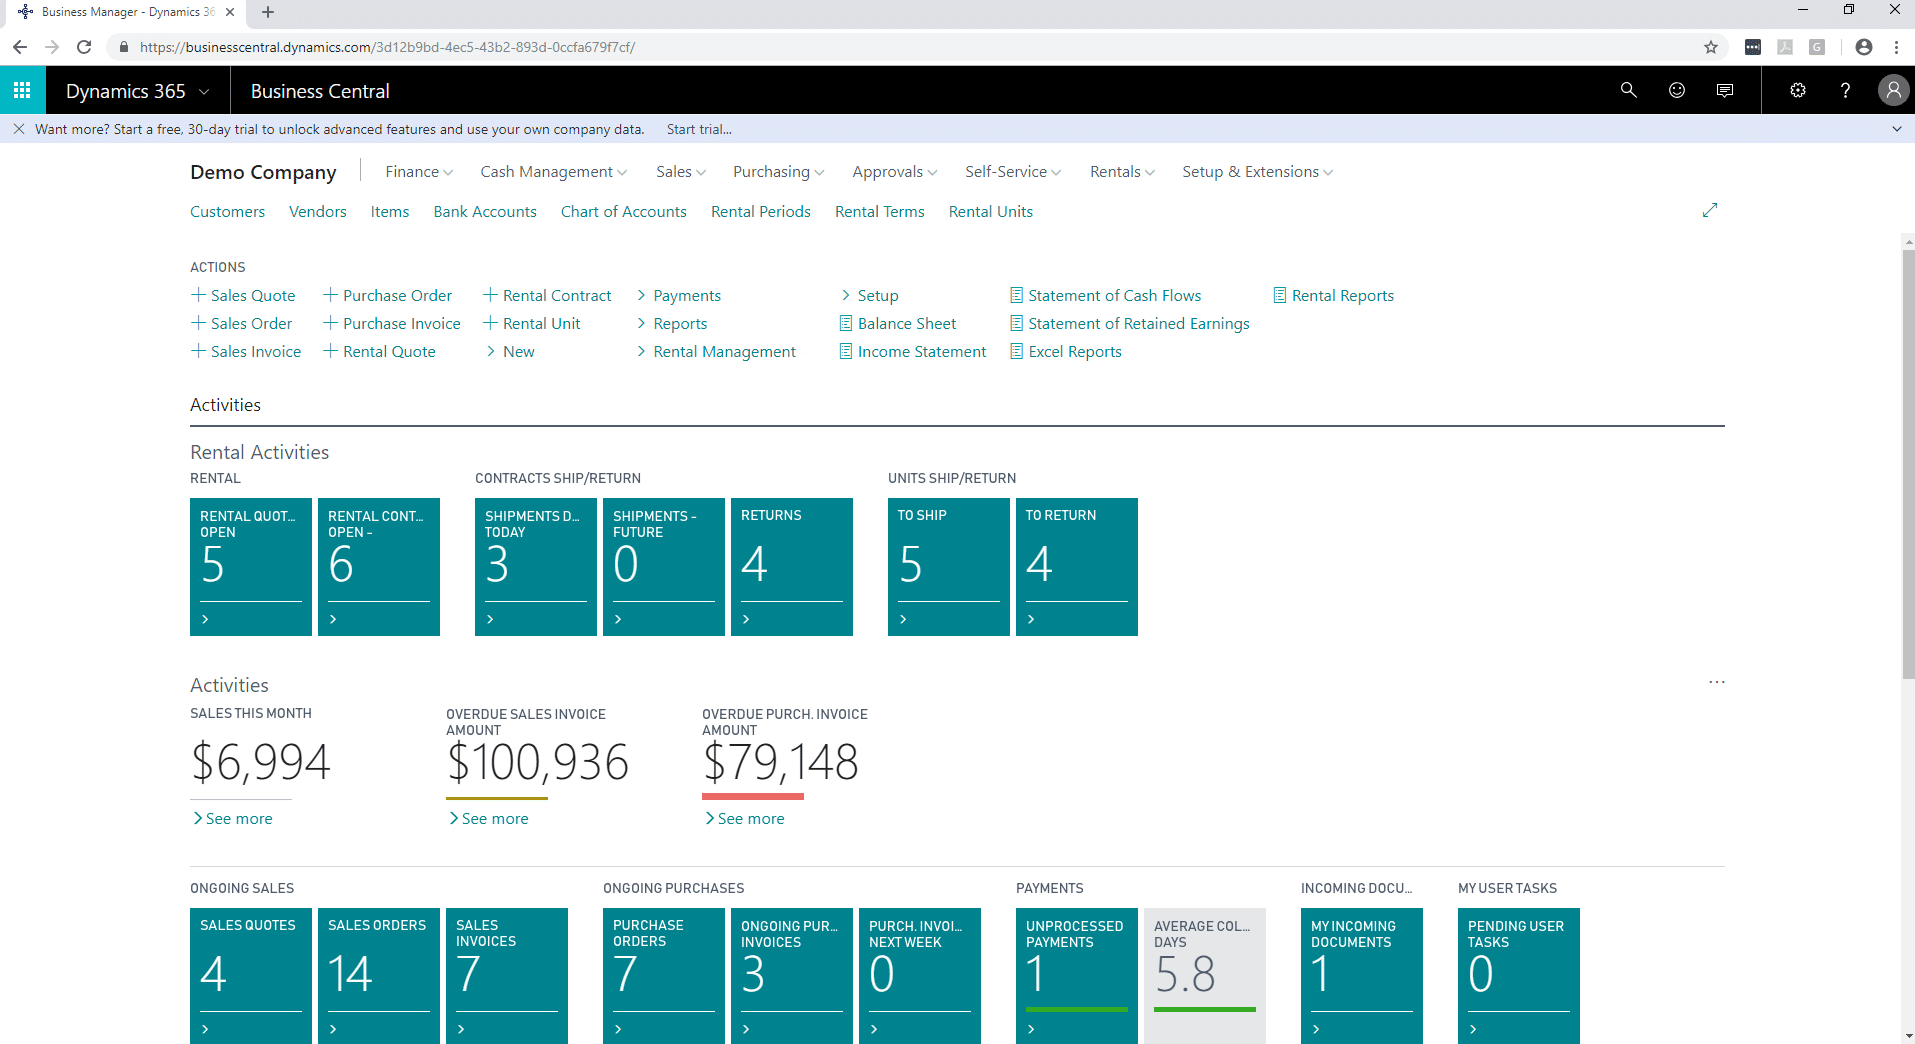 Screen capture of Business Central's interface